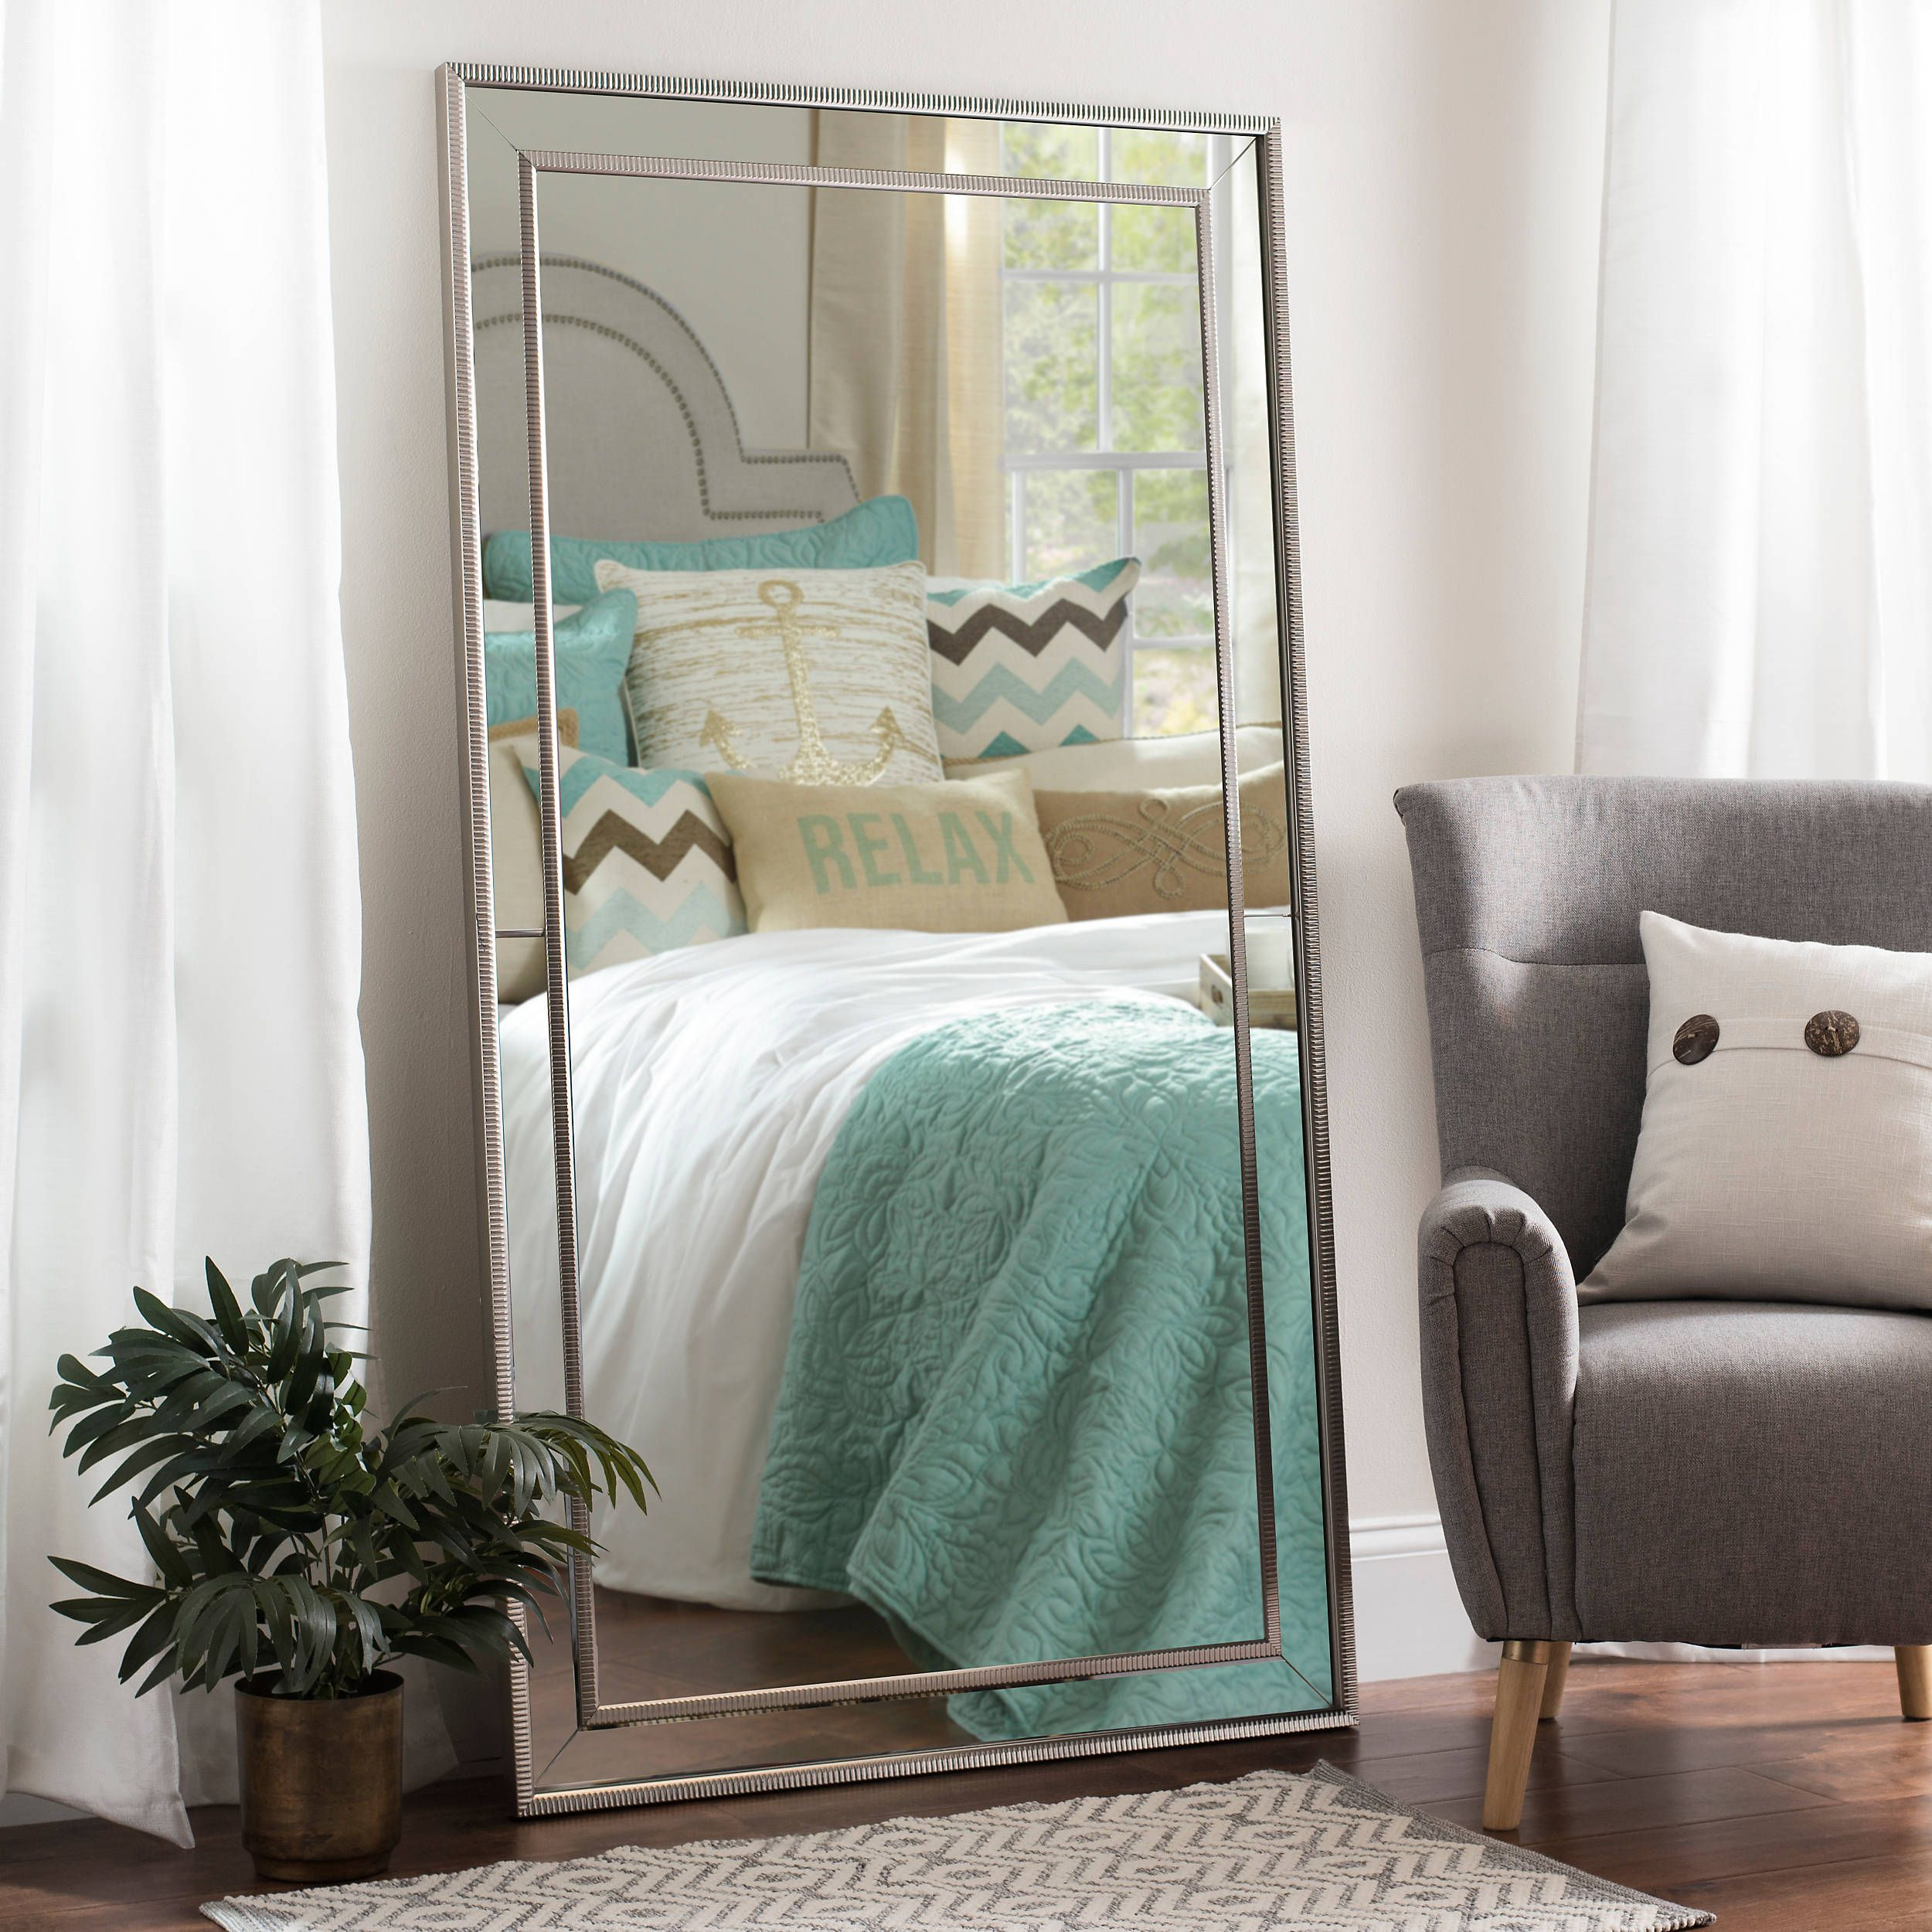 Large Silver Luxe Leaner Mirror, 37.2x67.2 in | Leaner ... on Floor Mirrors Decorative Kirklands id=99019